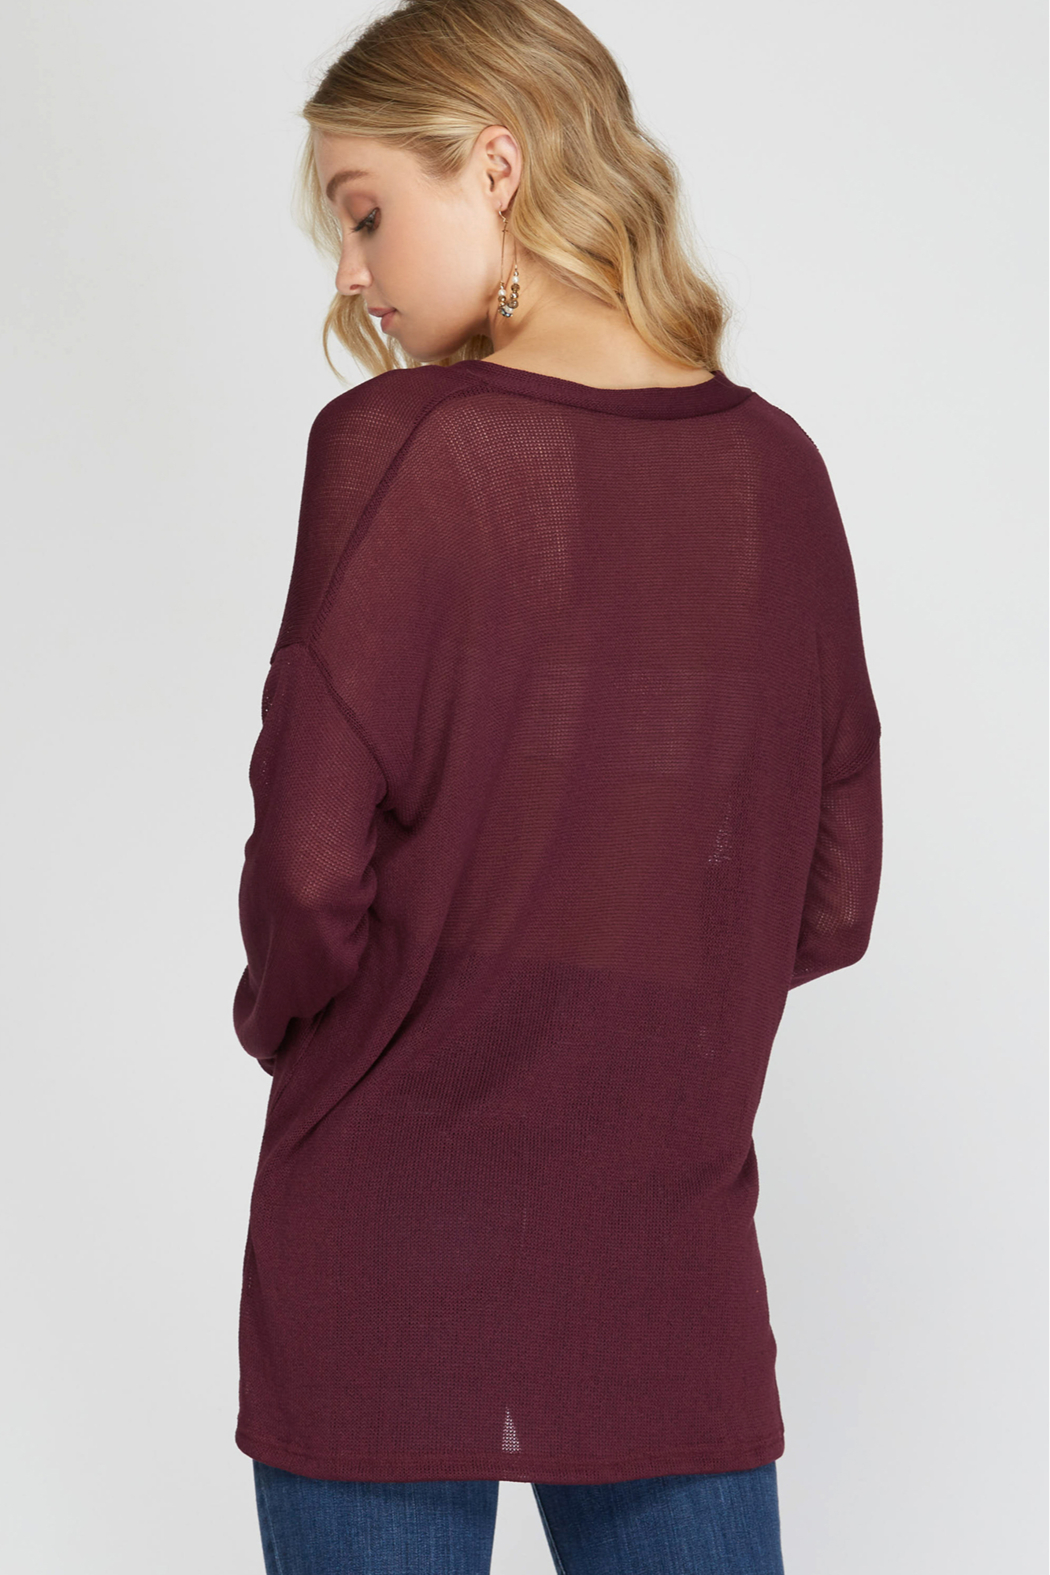 She and Sky LONG SLEEVE VNECK HI LOW KNIT TOP - Front Full Image